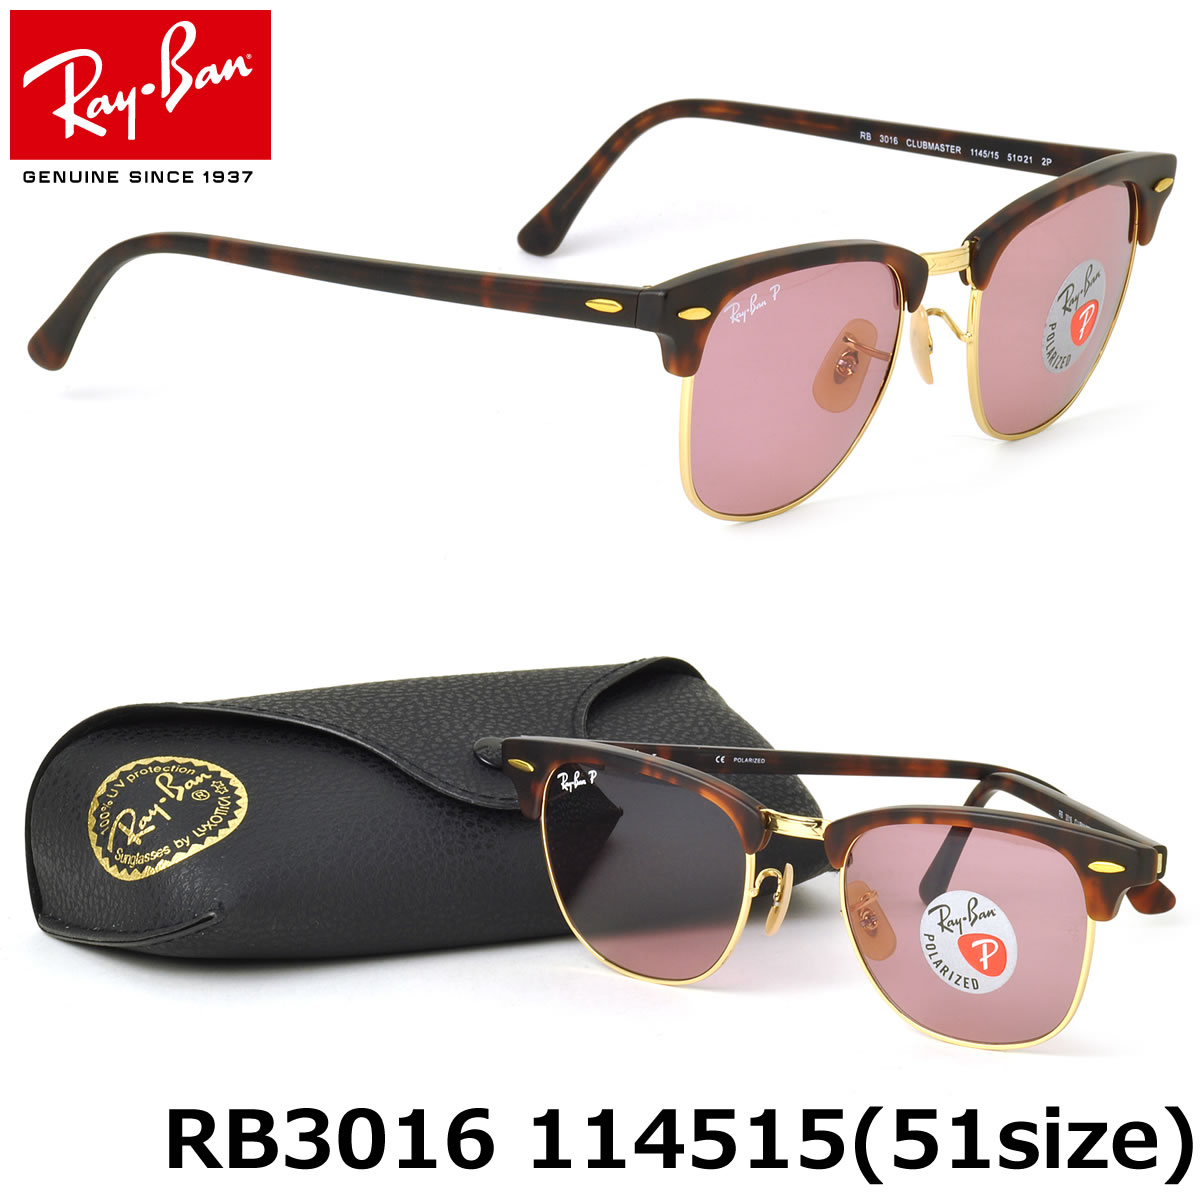 d69a45b1825092 Ray-Ban sunglasses polarization club master Ray-Ban RB3016 1145/15 51 size  ...